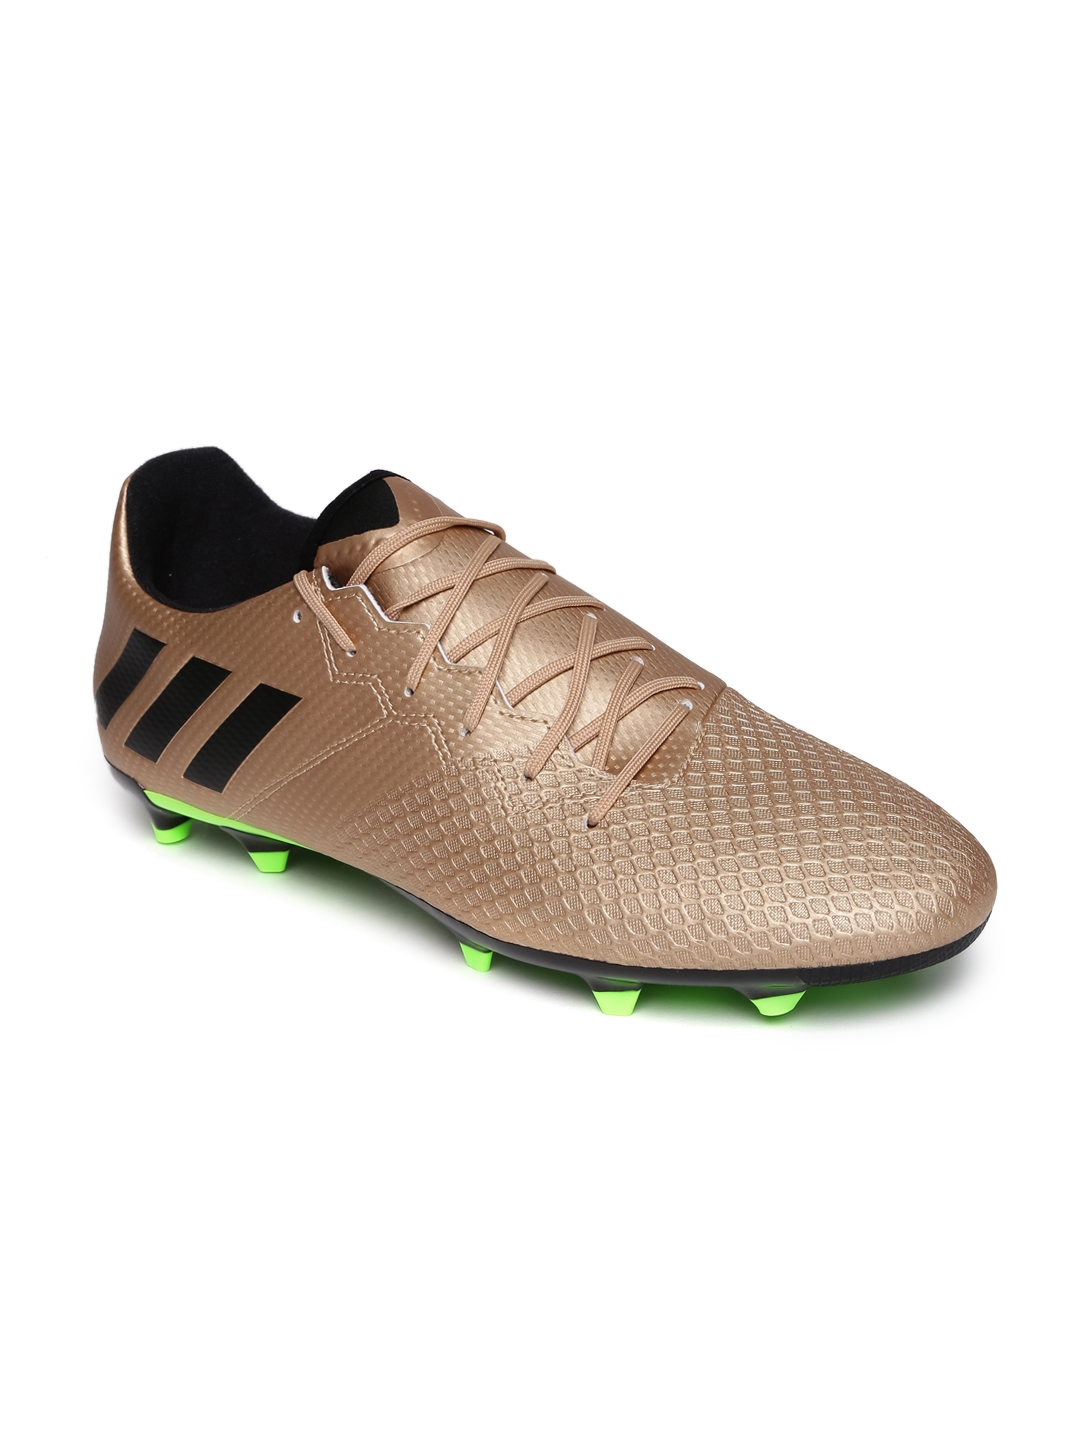 081e5abdbc6 Buy ADIDAS Men Muted Gold Toned Messi 16.3 FG Football Shoes ...